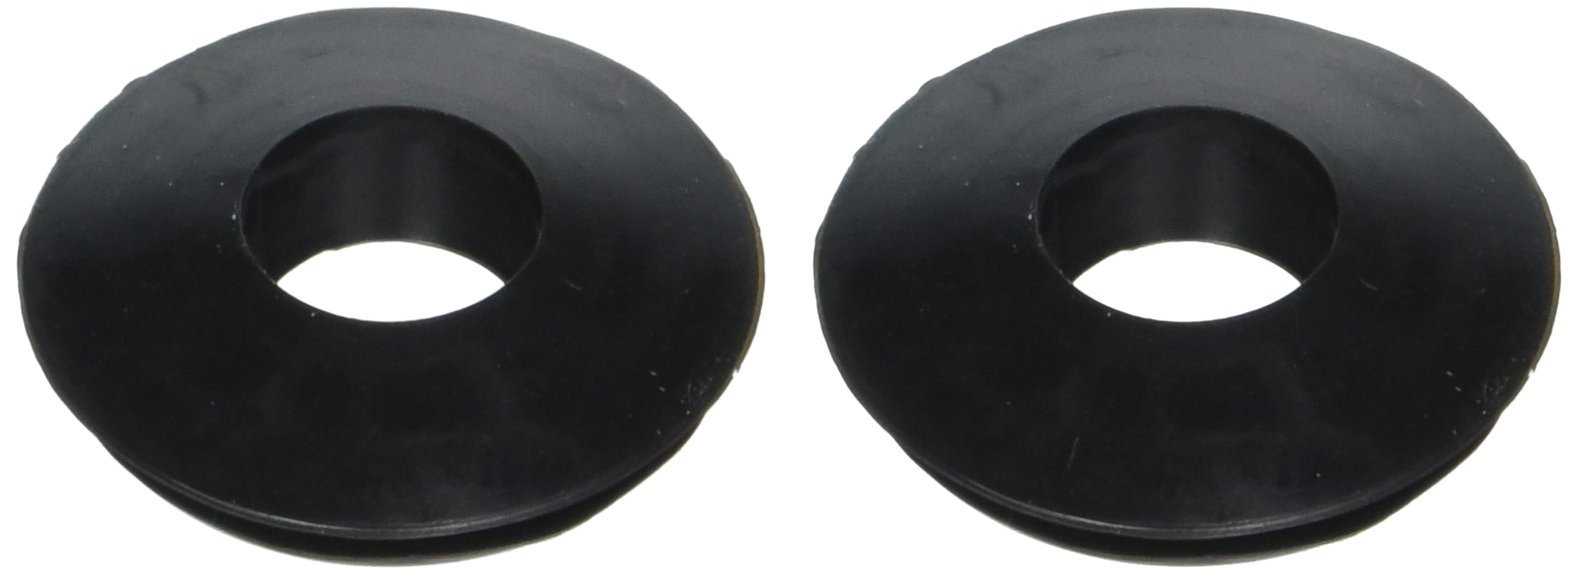 RoadPro RP-3601 Black Double Lip Gladhand Seal, (Pack of 2) by RoadPro